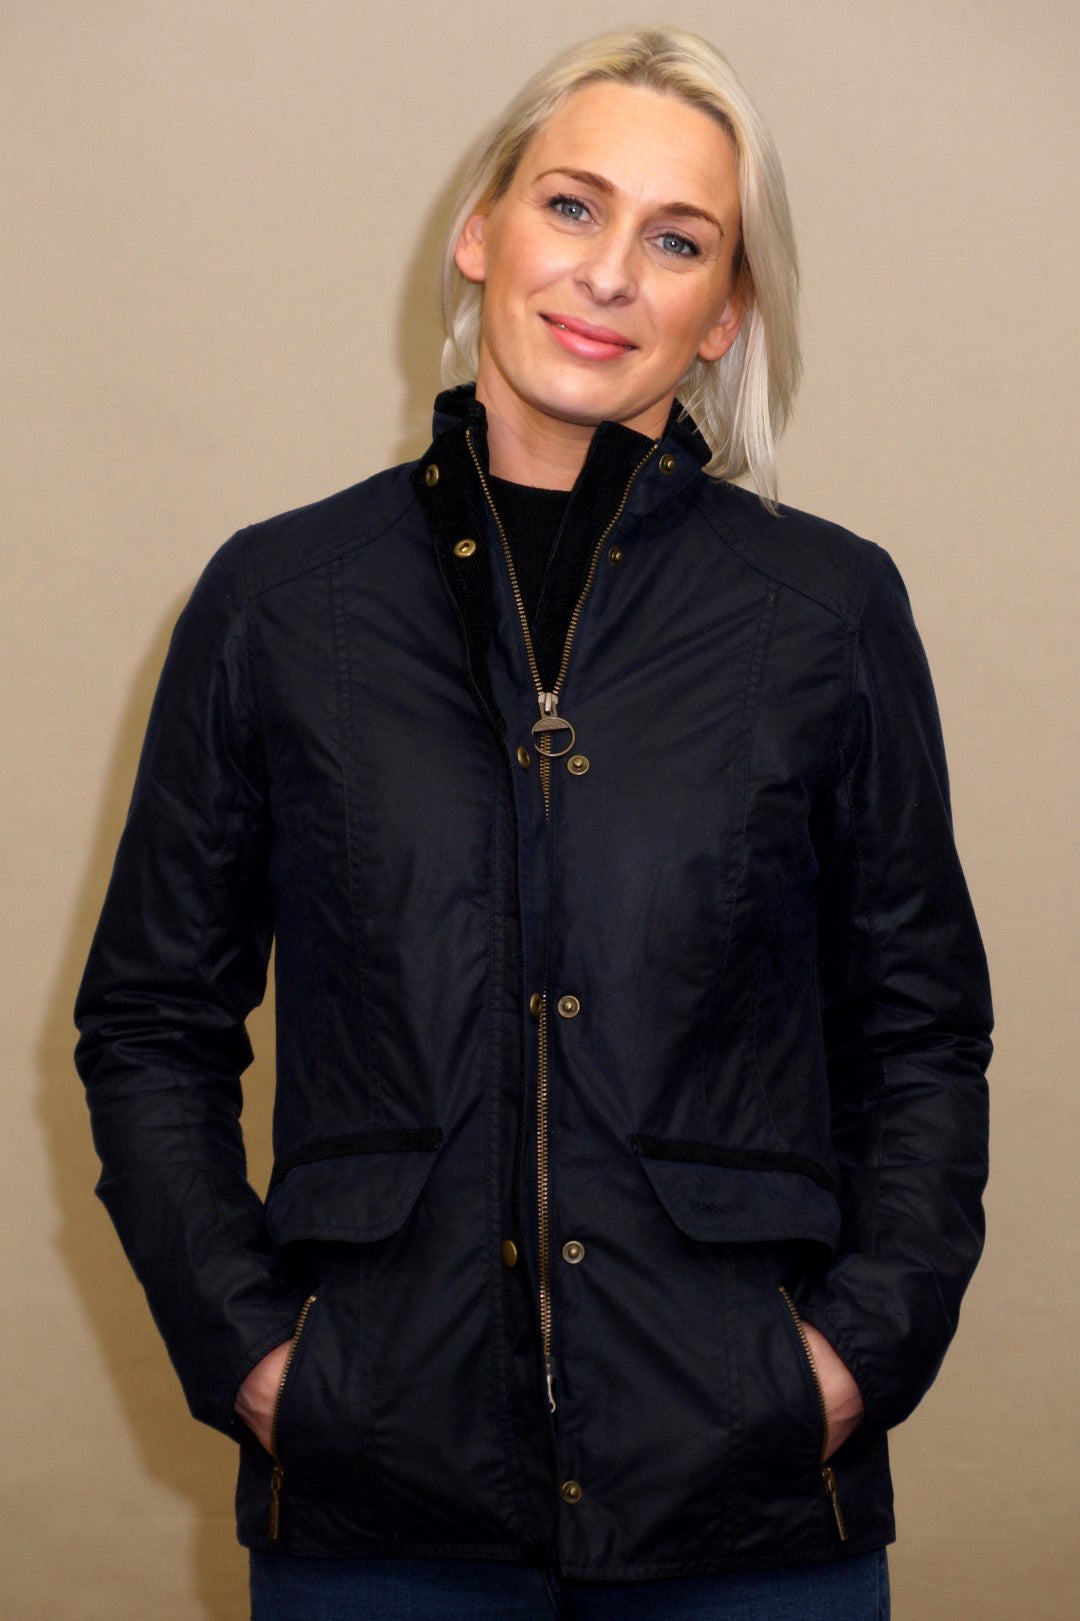 ea10305fe4b Ladies Barbour Wax Jackets from Smythys Barbour Wax Jacket Range - Smyths  Country Sports